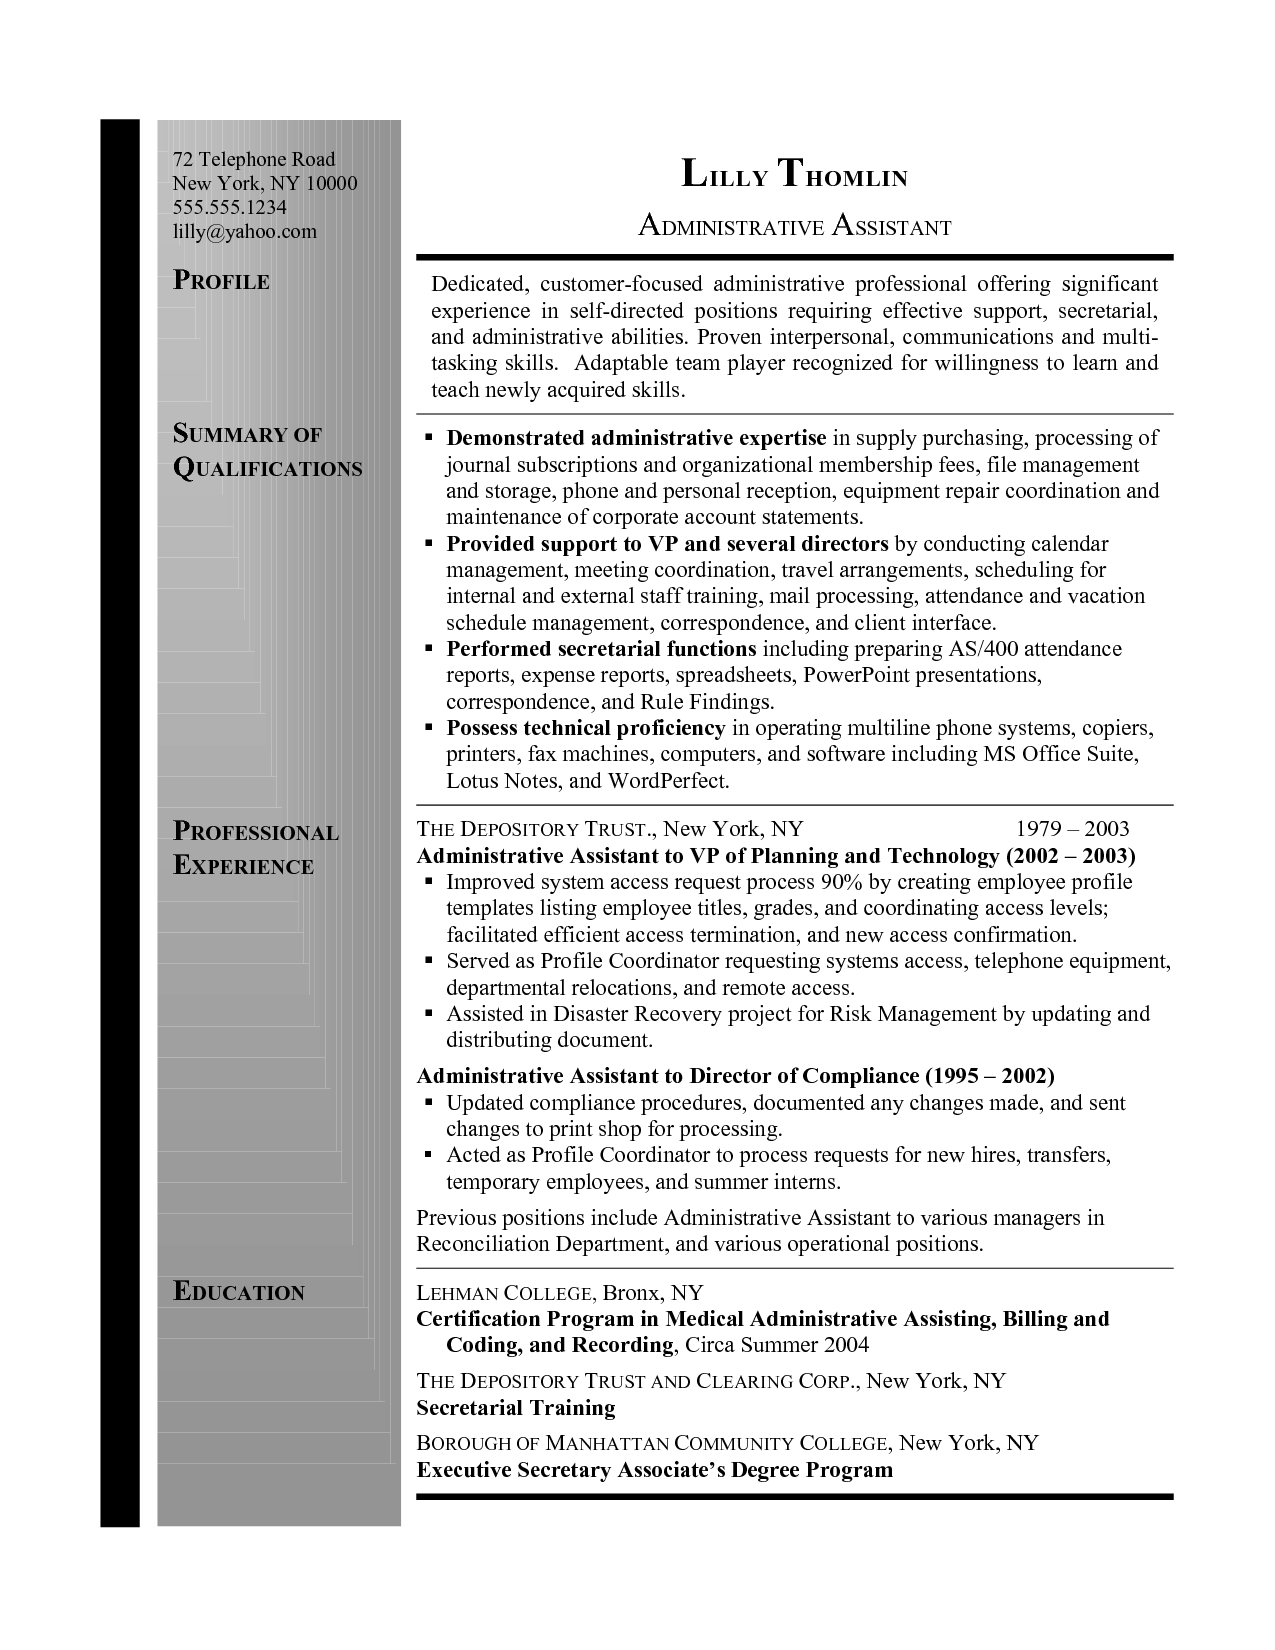 secretary resume example is a sample resume for executive assistant with secretarial work in the banking industry - Sample Resume Summary For Secretary